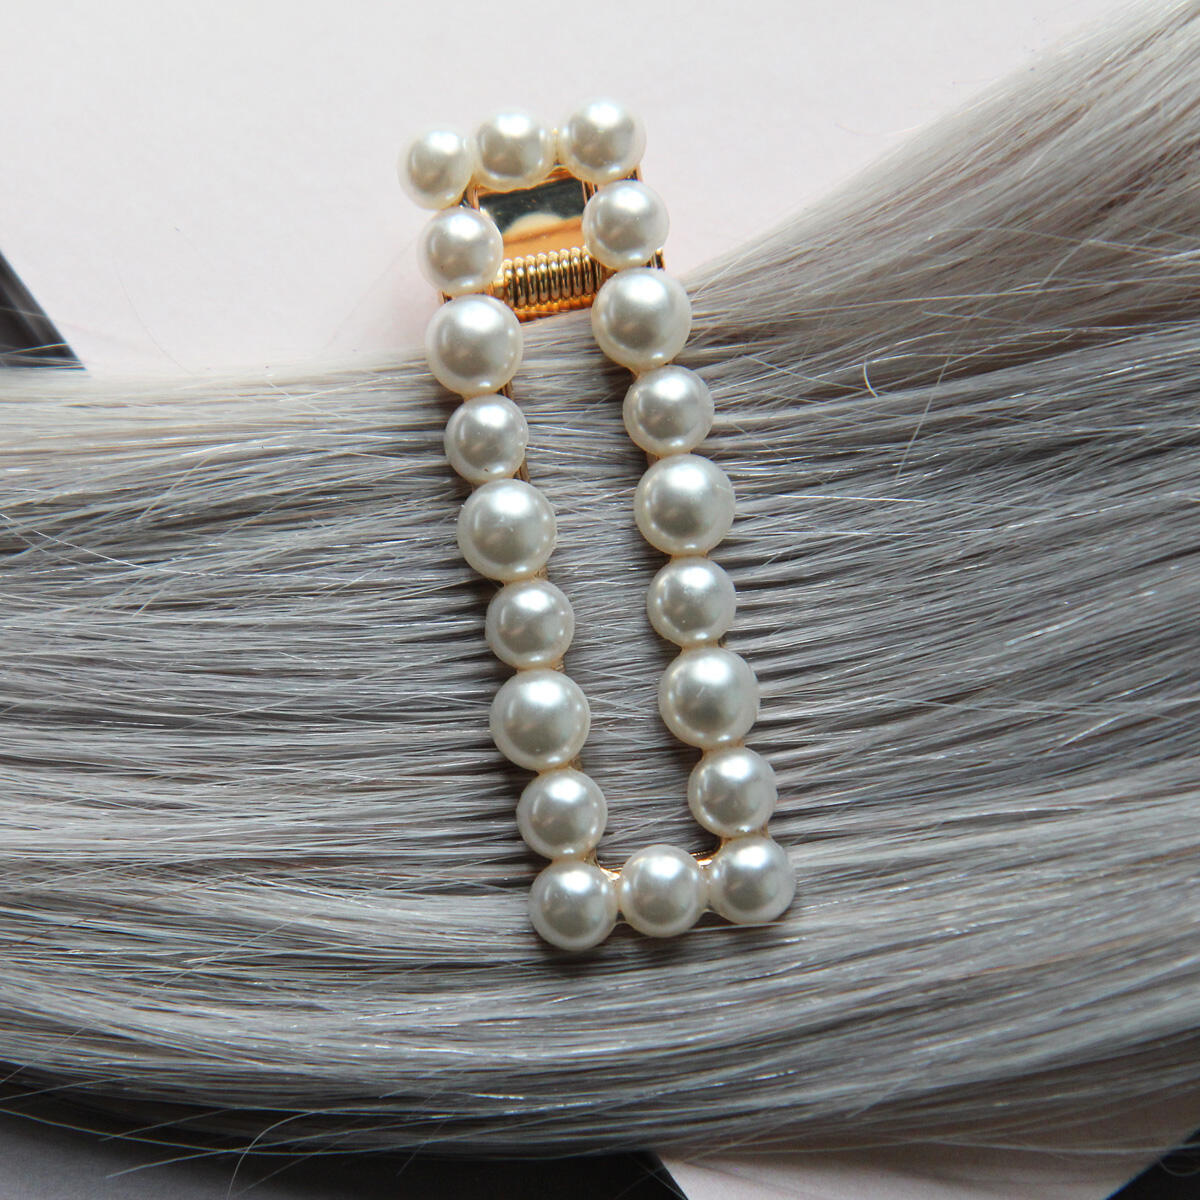 Rectangular hair slide with pearls Pearl Collection no. 8 null